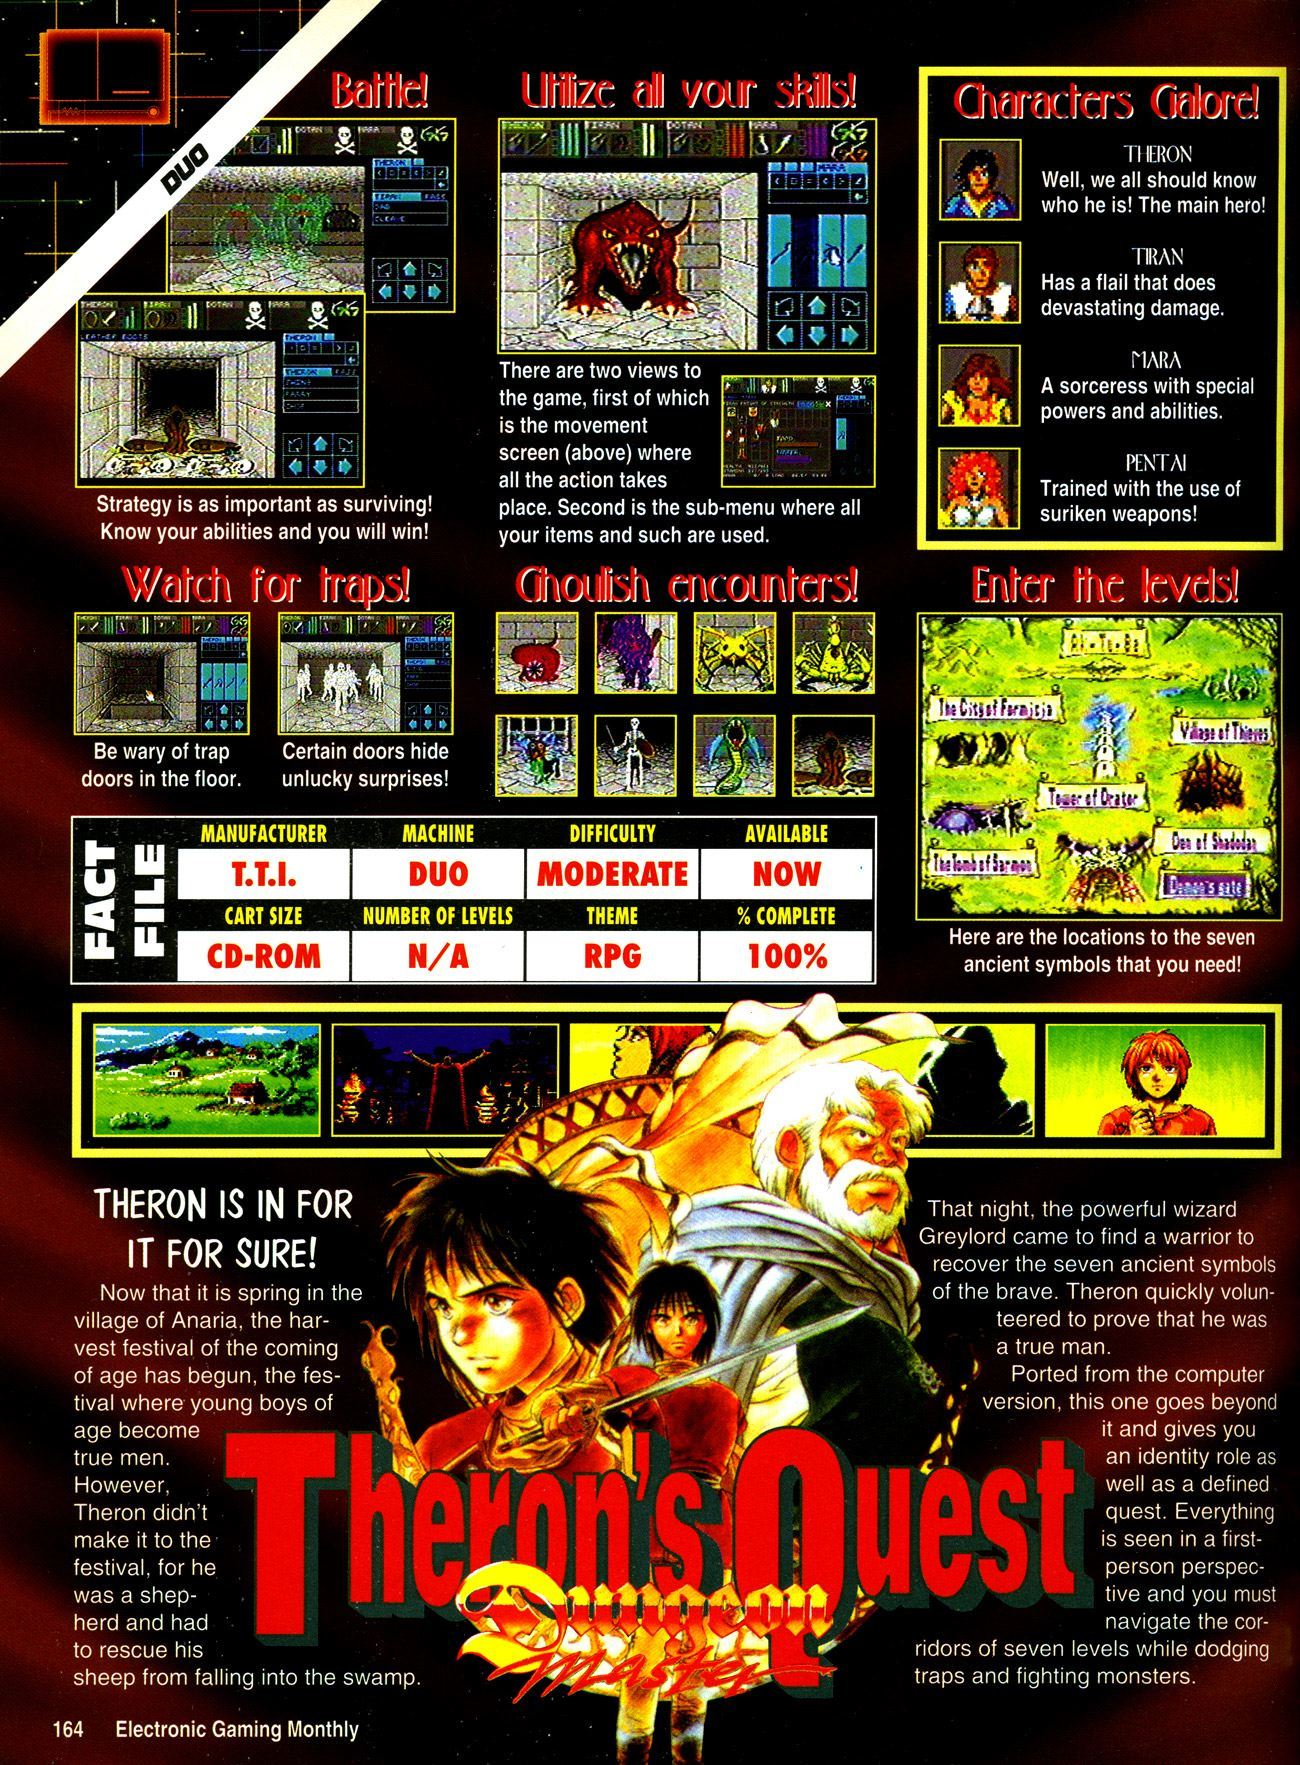 Theron's Quest Review published in American magazine 'Electronic Gaming Monthly', Issue #47 Vol 6 No 6 June 1993, Page 164